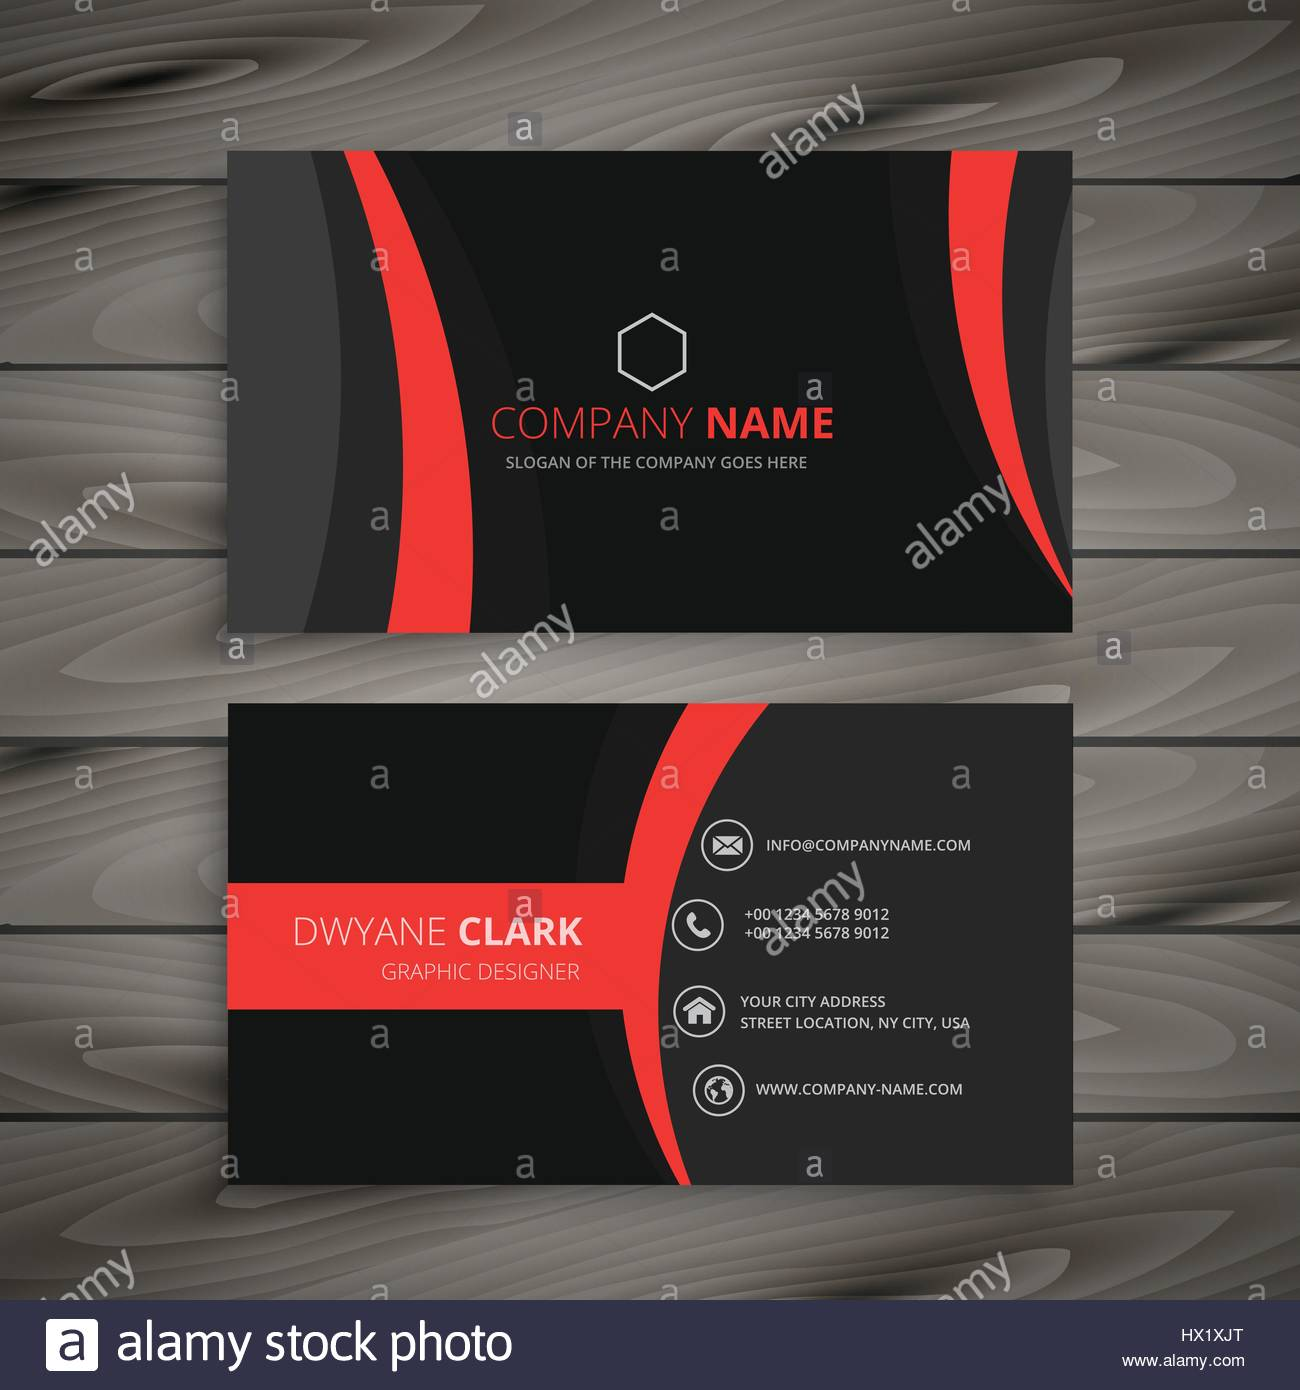 Dark modern red black business card template vector design stock dark modern red black business card template vector design illustration fbccfo Image collections